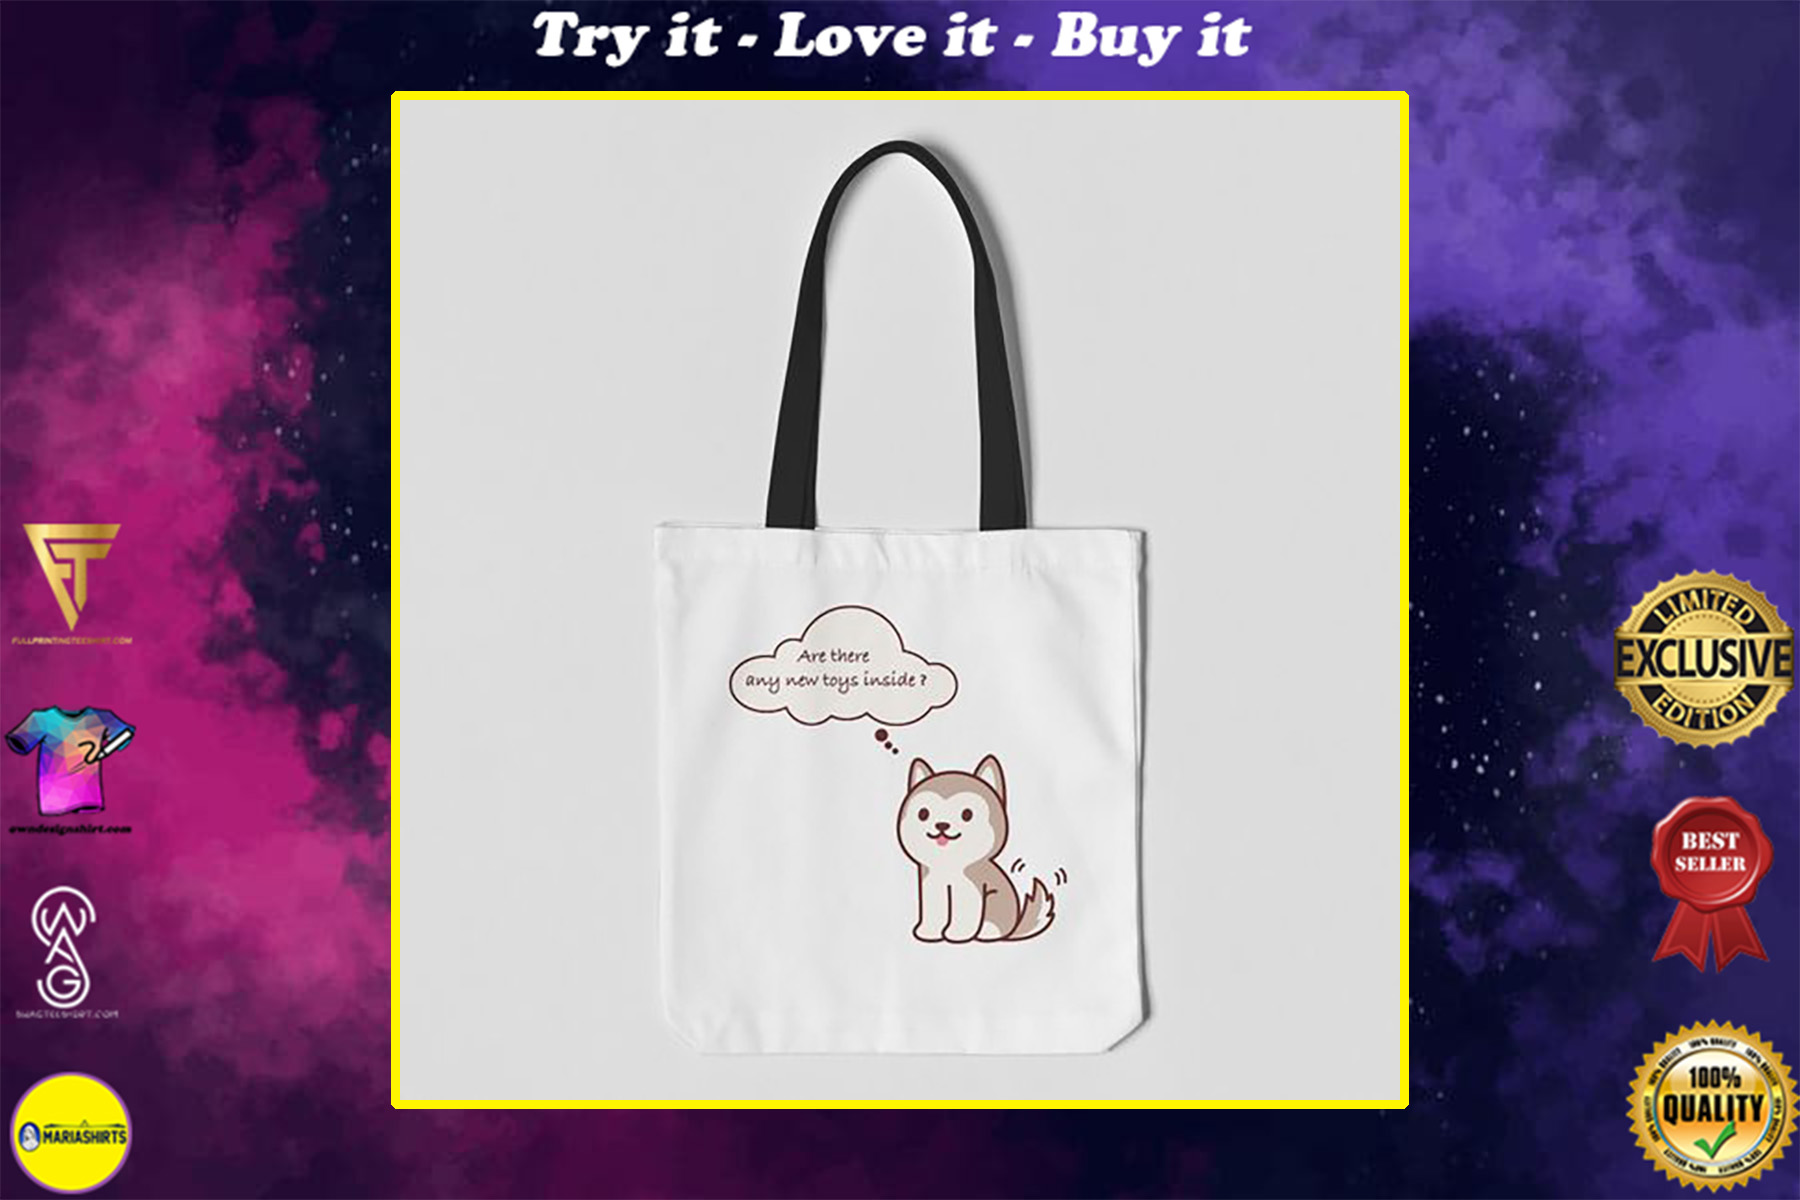 husky dog are there any new toys inside tote bag